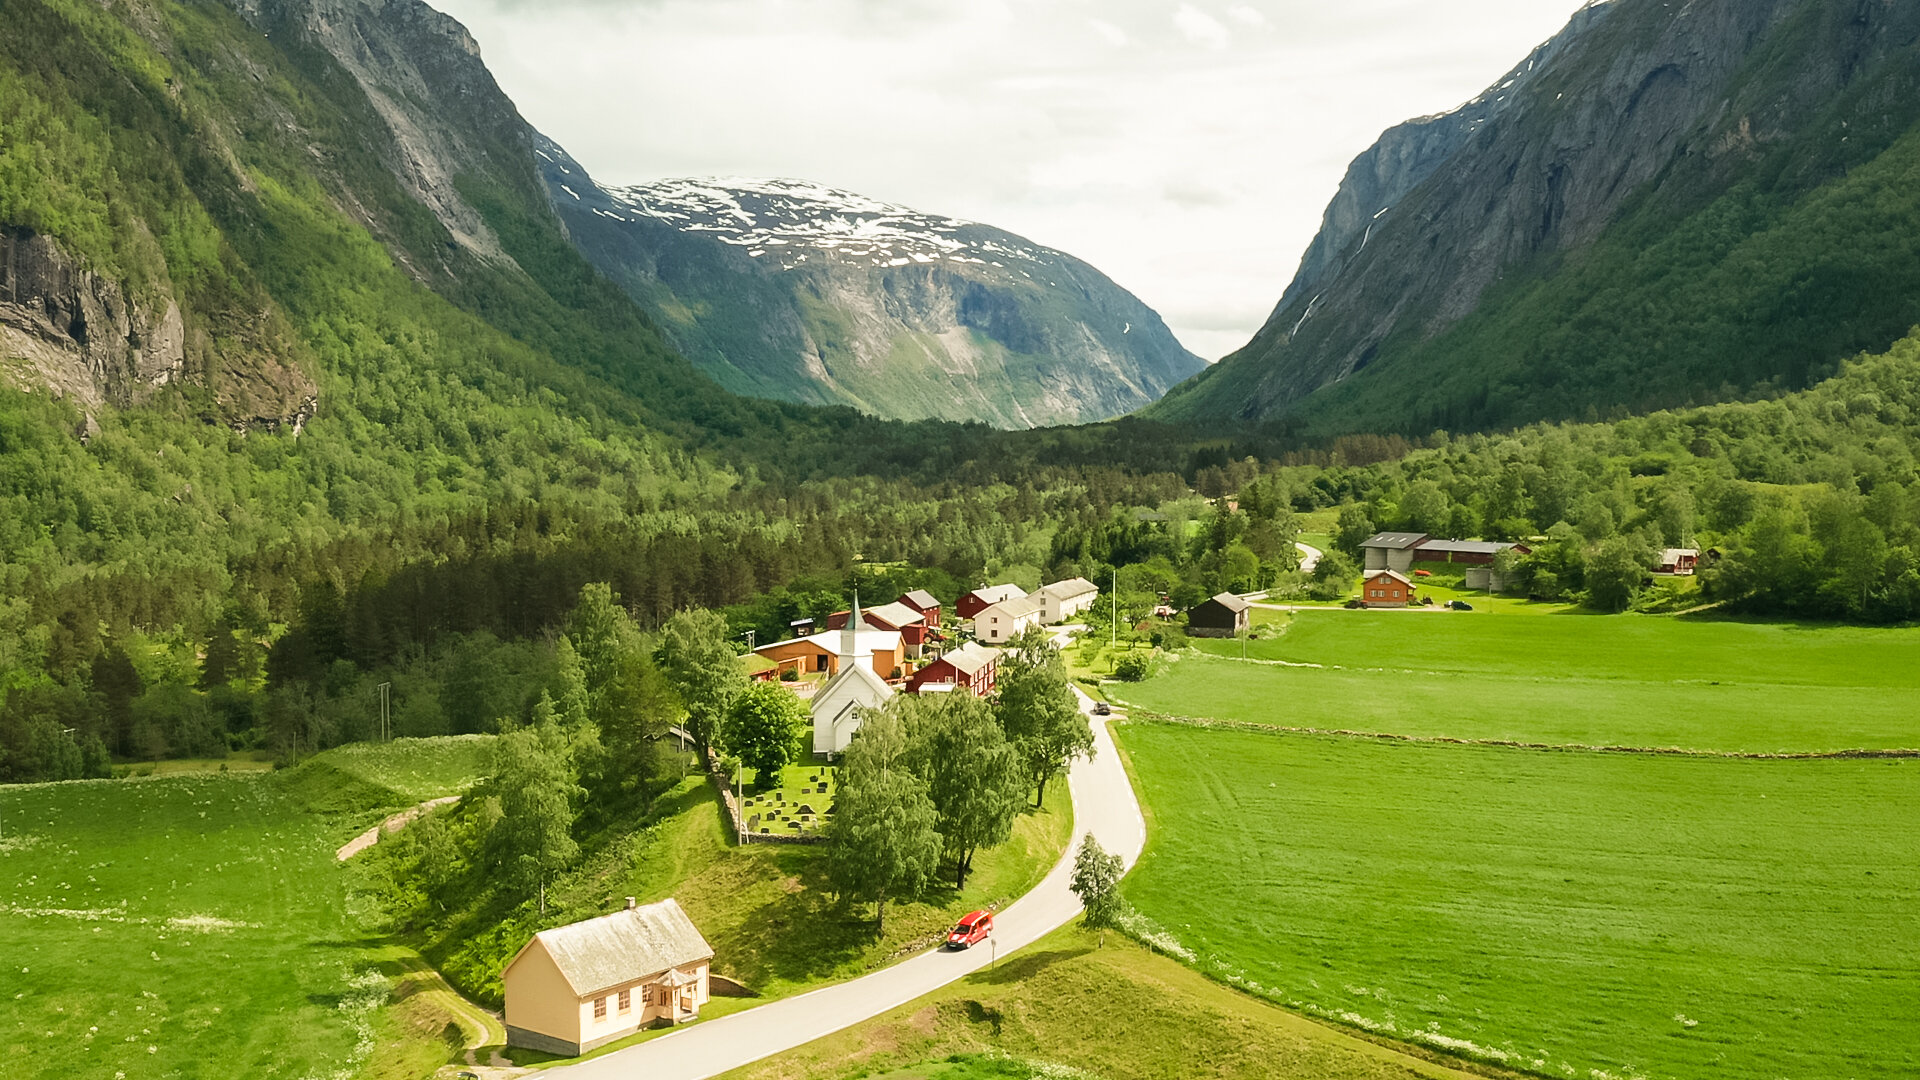 Having inside knowledge about our fjords and mountains is a market advantage when scouting for drone locations. Captured with Mavic 2 Pro.